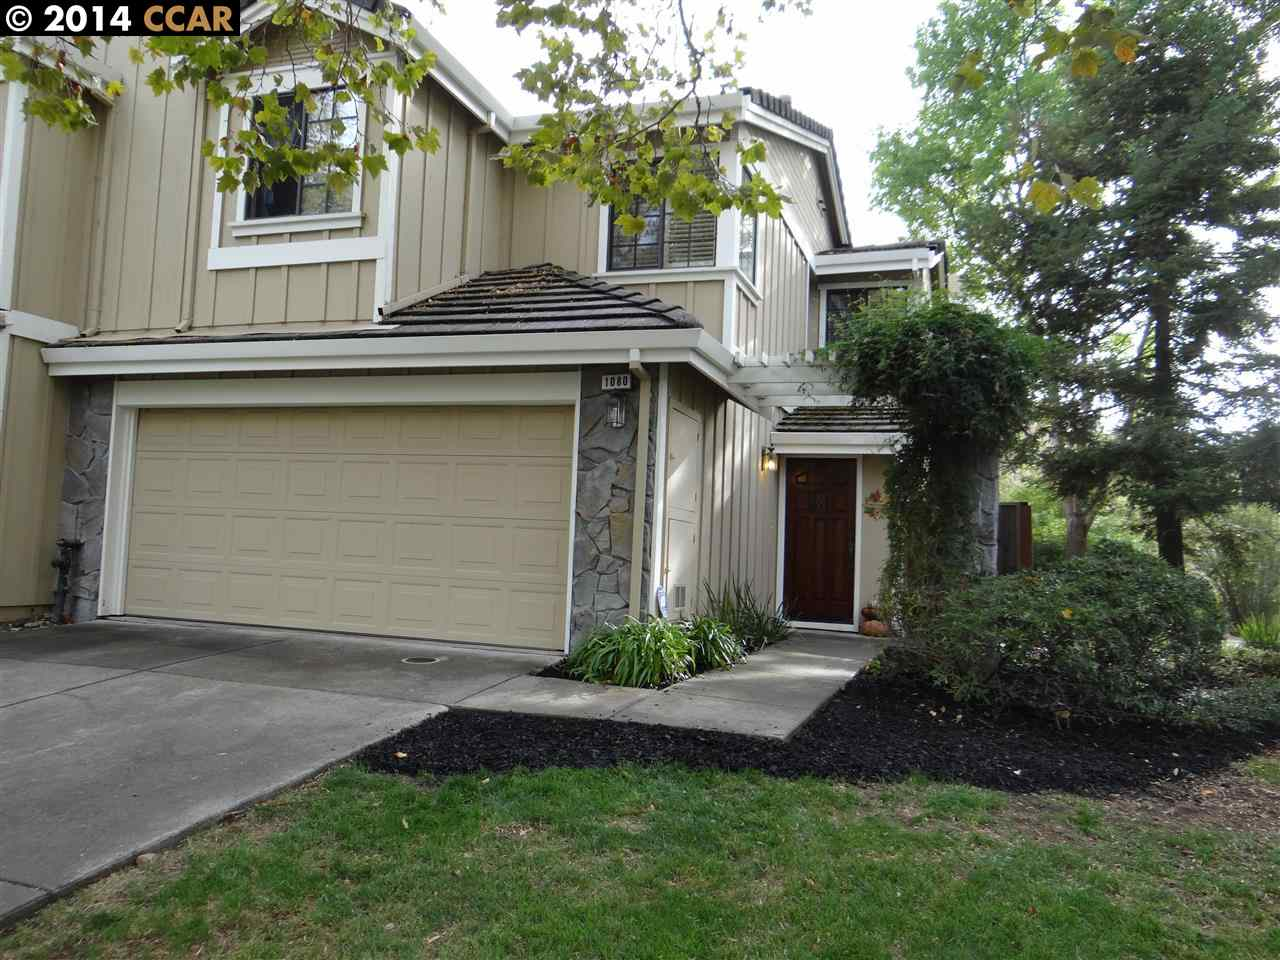 Additional photo for property listing at 1080 Shady Creek Place  Danville, カリフォルニア 94526 アメリカ合衆国